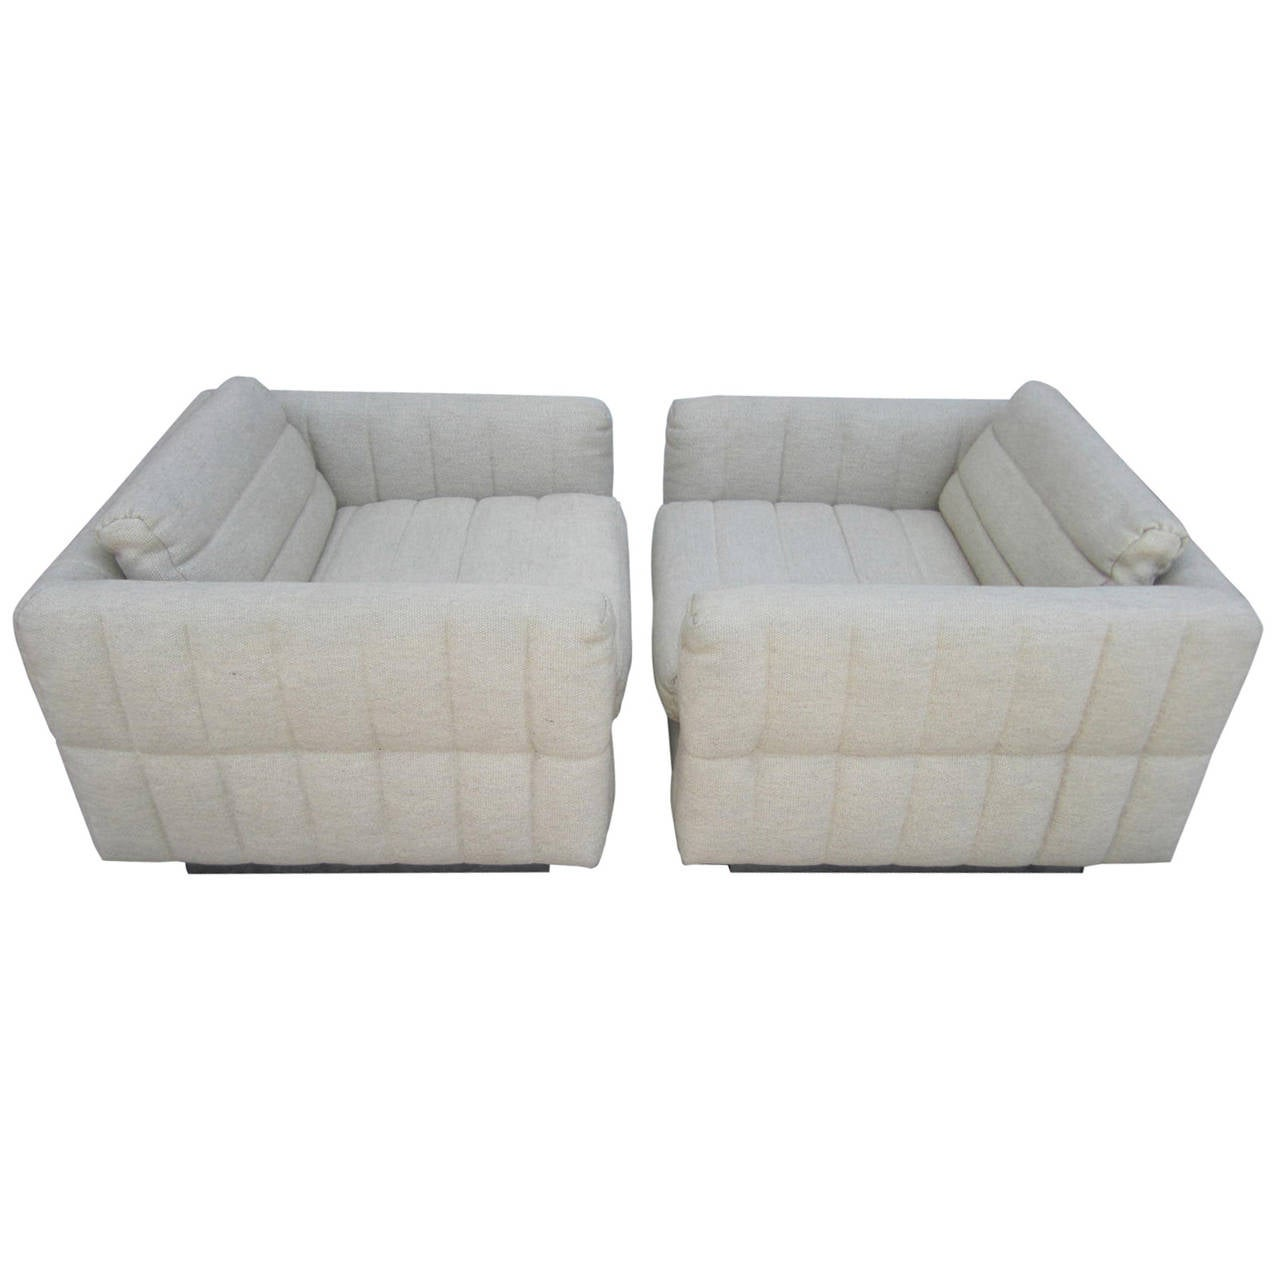 lovely pair of channel tufted milo baughman cube chairs chrome base mid century 1 channel tufted furniture